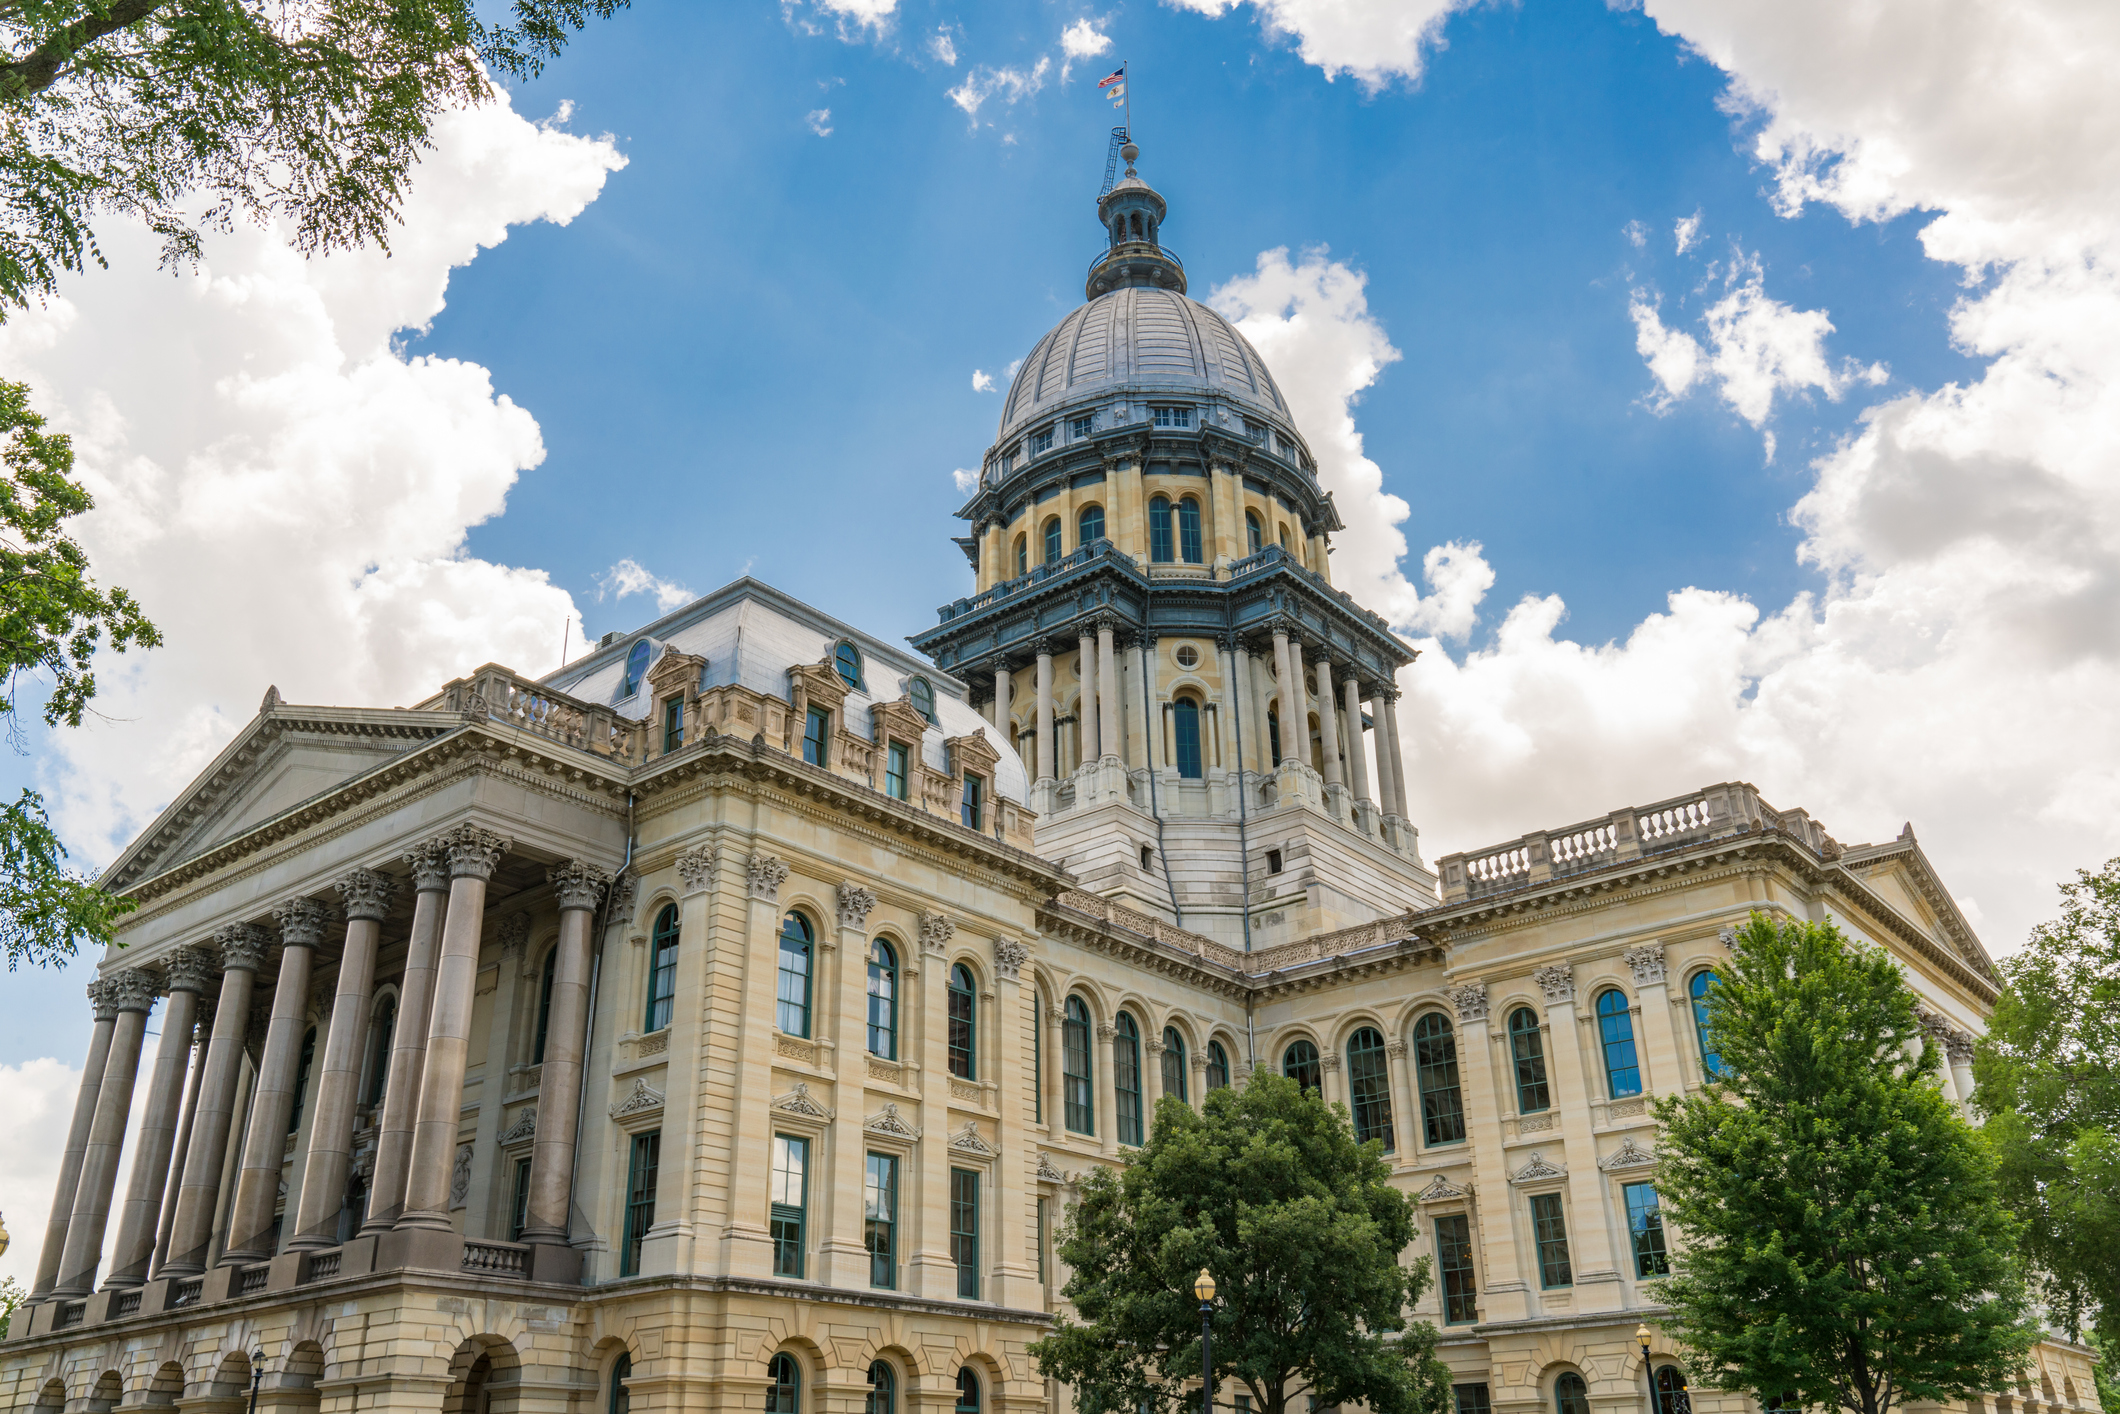 Illinois ranks 21st highest on state-by-state prosperity index